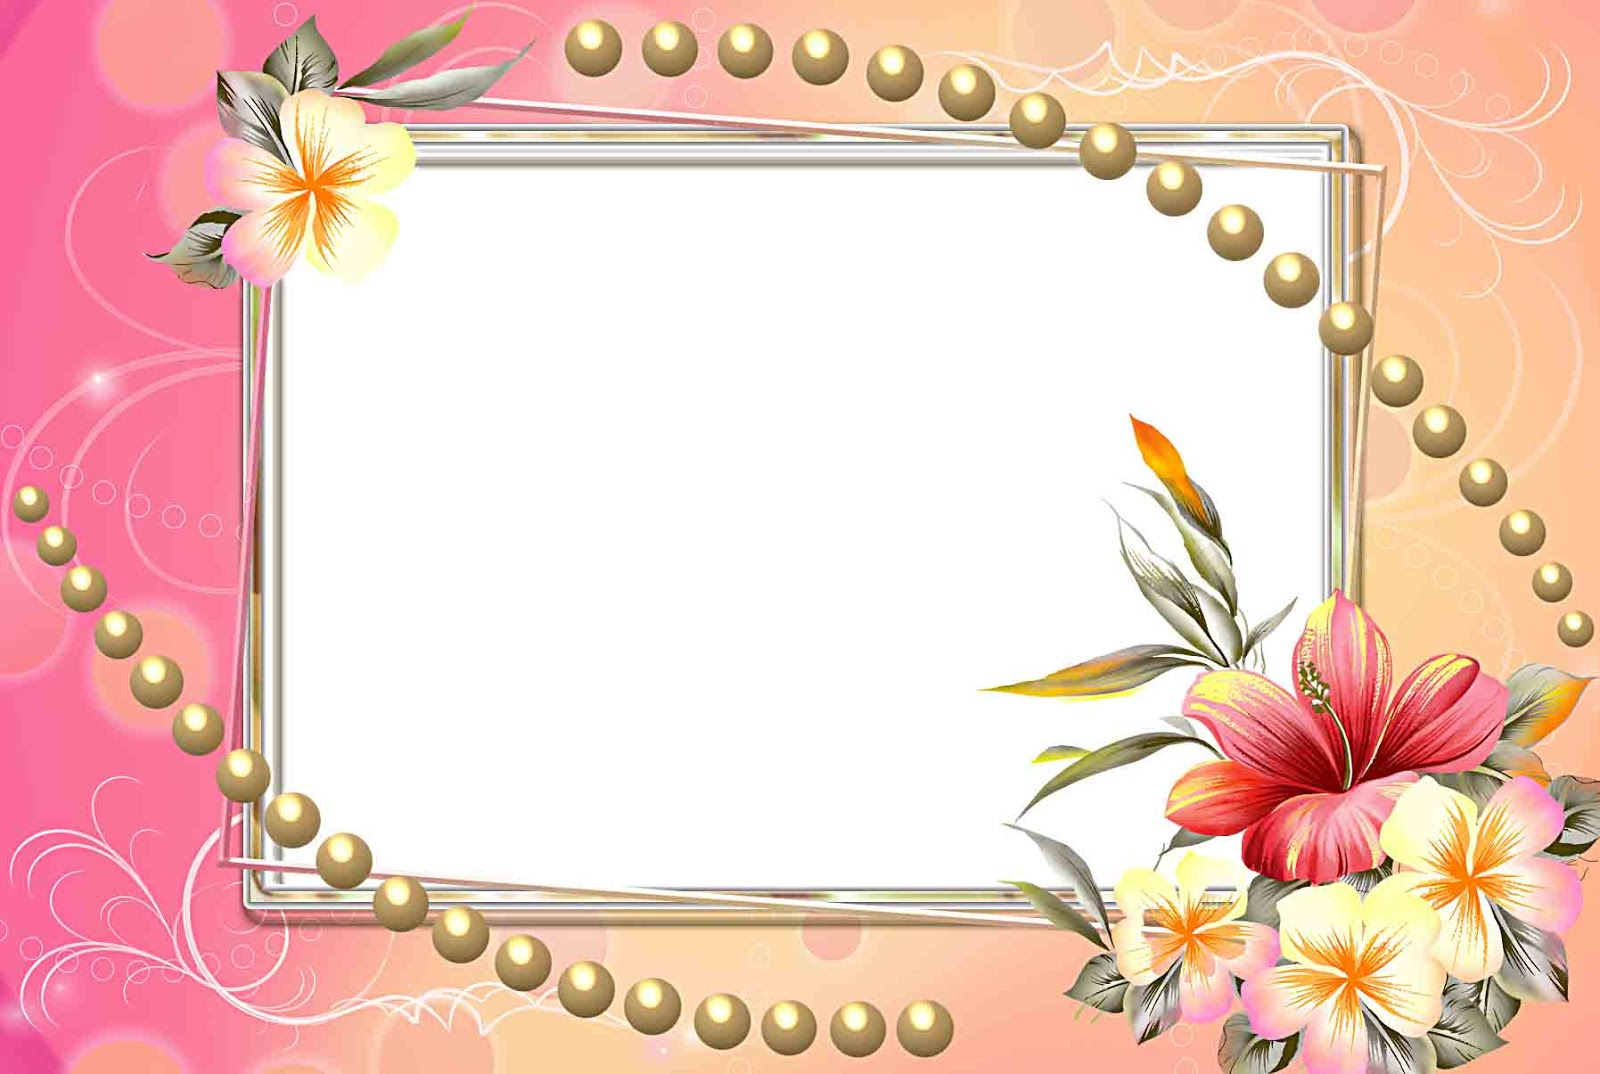 download flowers frame png free